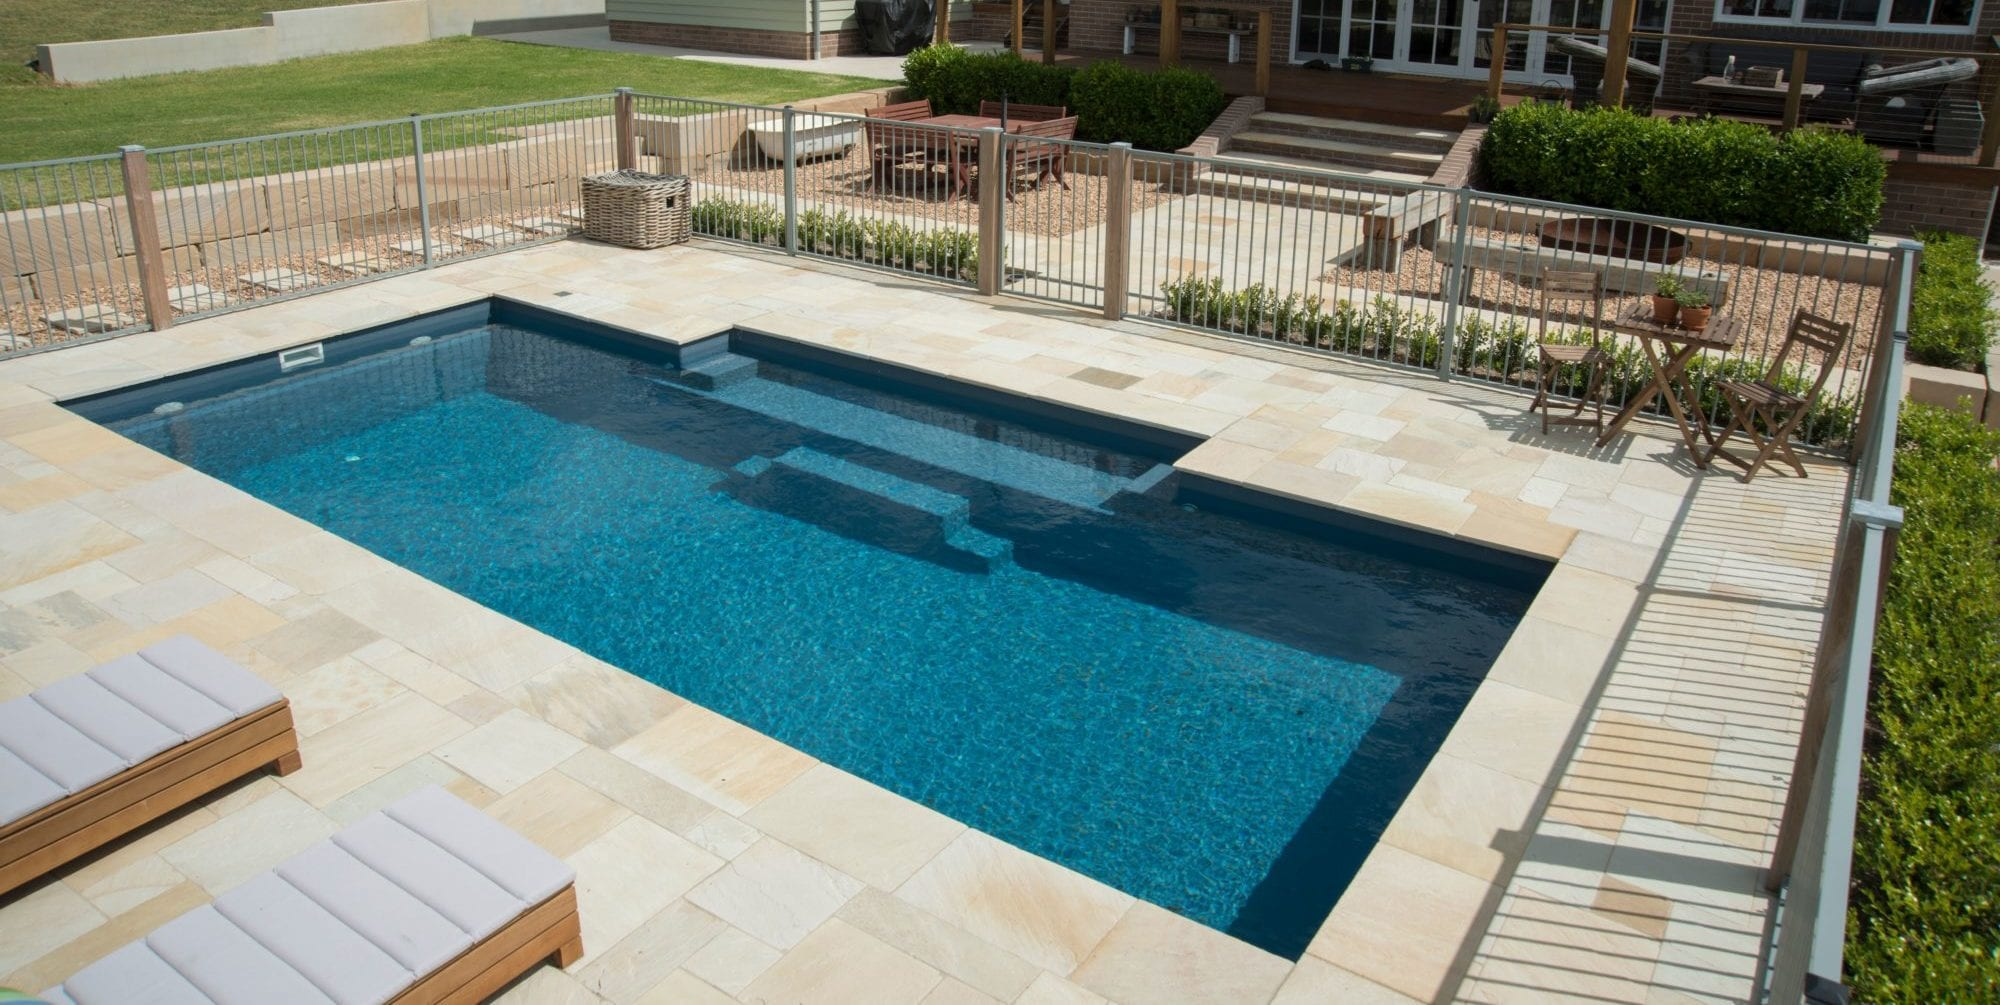 Heritage Pool design by Port Pools by Design